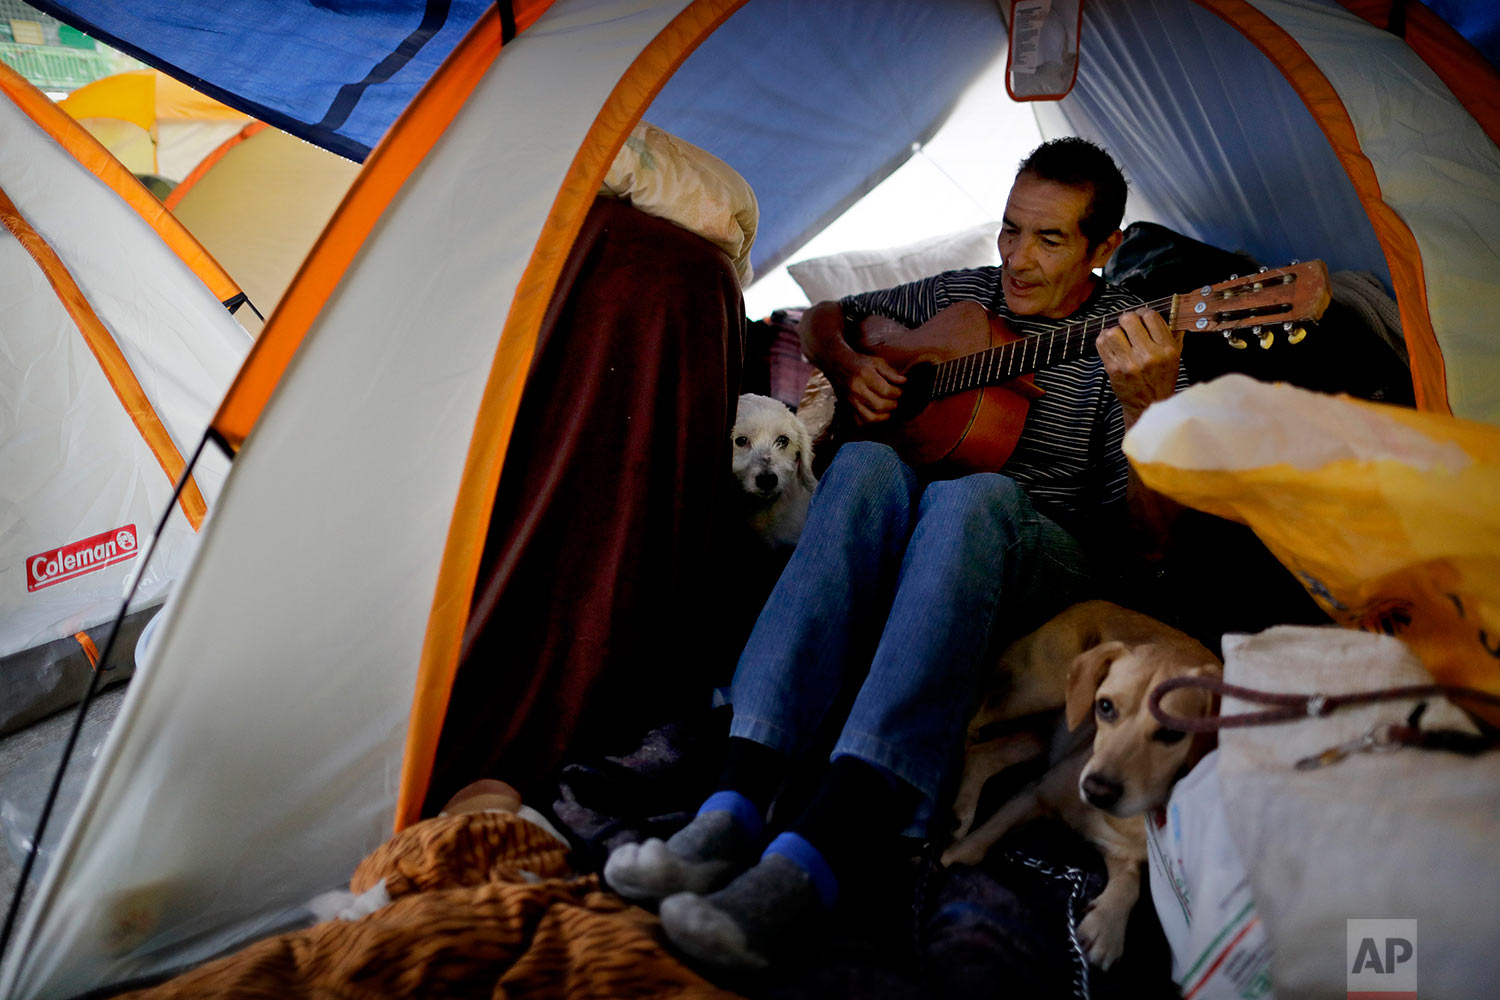 Eduardo Alvarez plays his guitar inside a tent with his pet dogs Lucas and Peluche at the Francisco Kino school, which was turned into a temporary shelter for residents evacuated from the large apartment complex in the Tlalpan neighborhood of Mexico City, Monday, Sept. 25, 2017.  (AP Photo/Natacha Pisarenko)